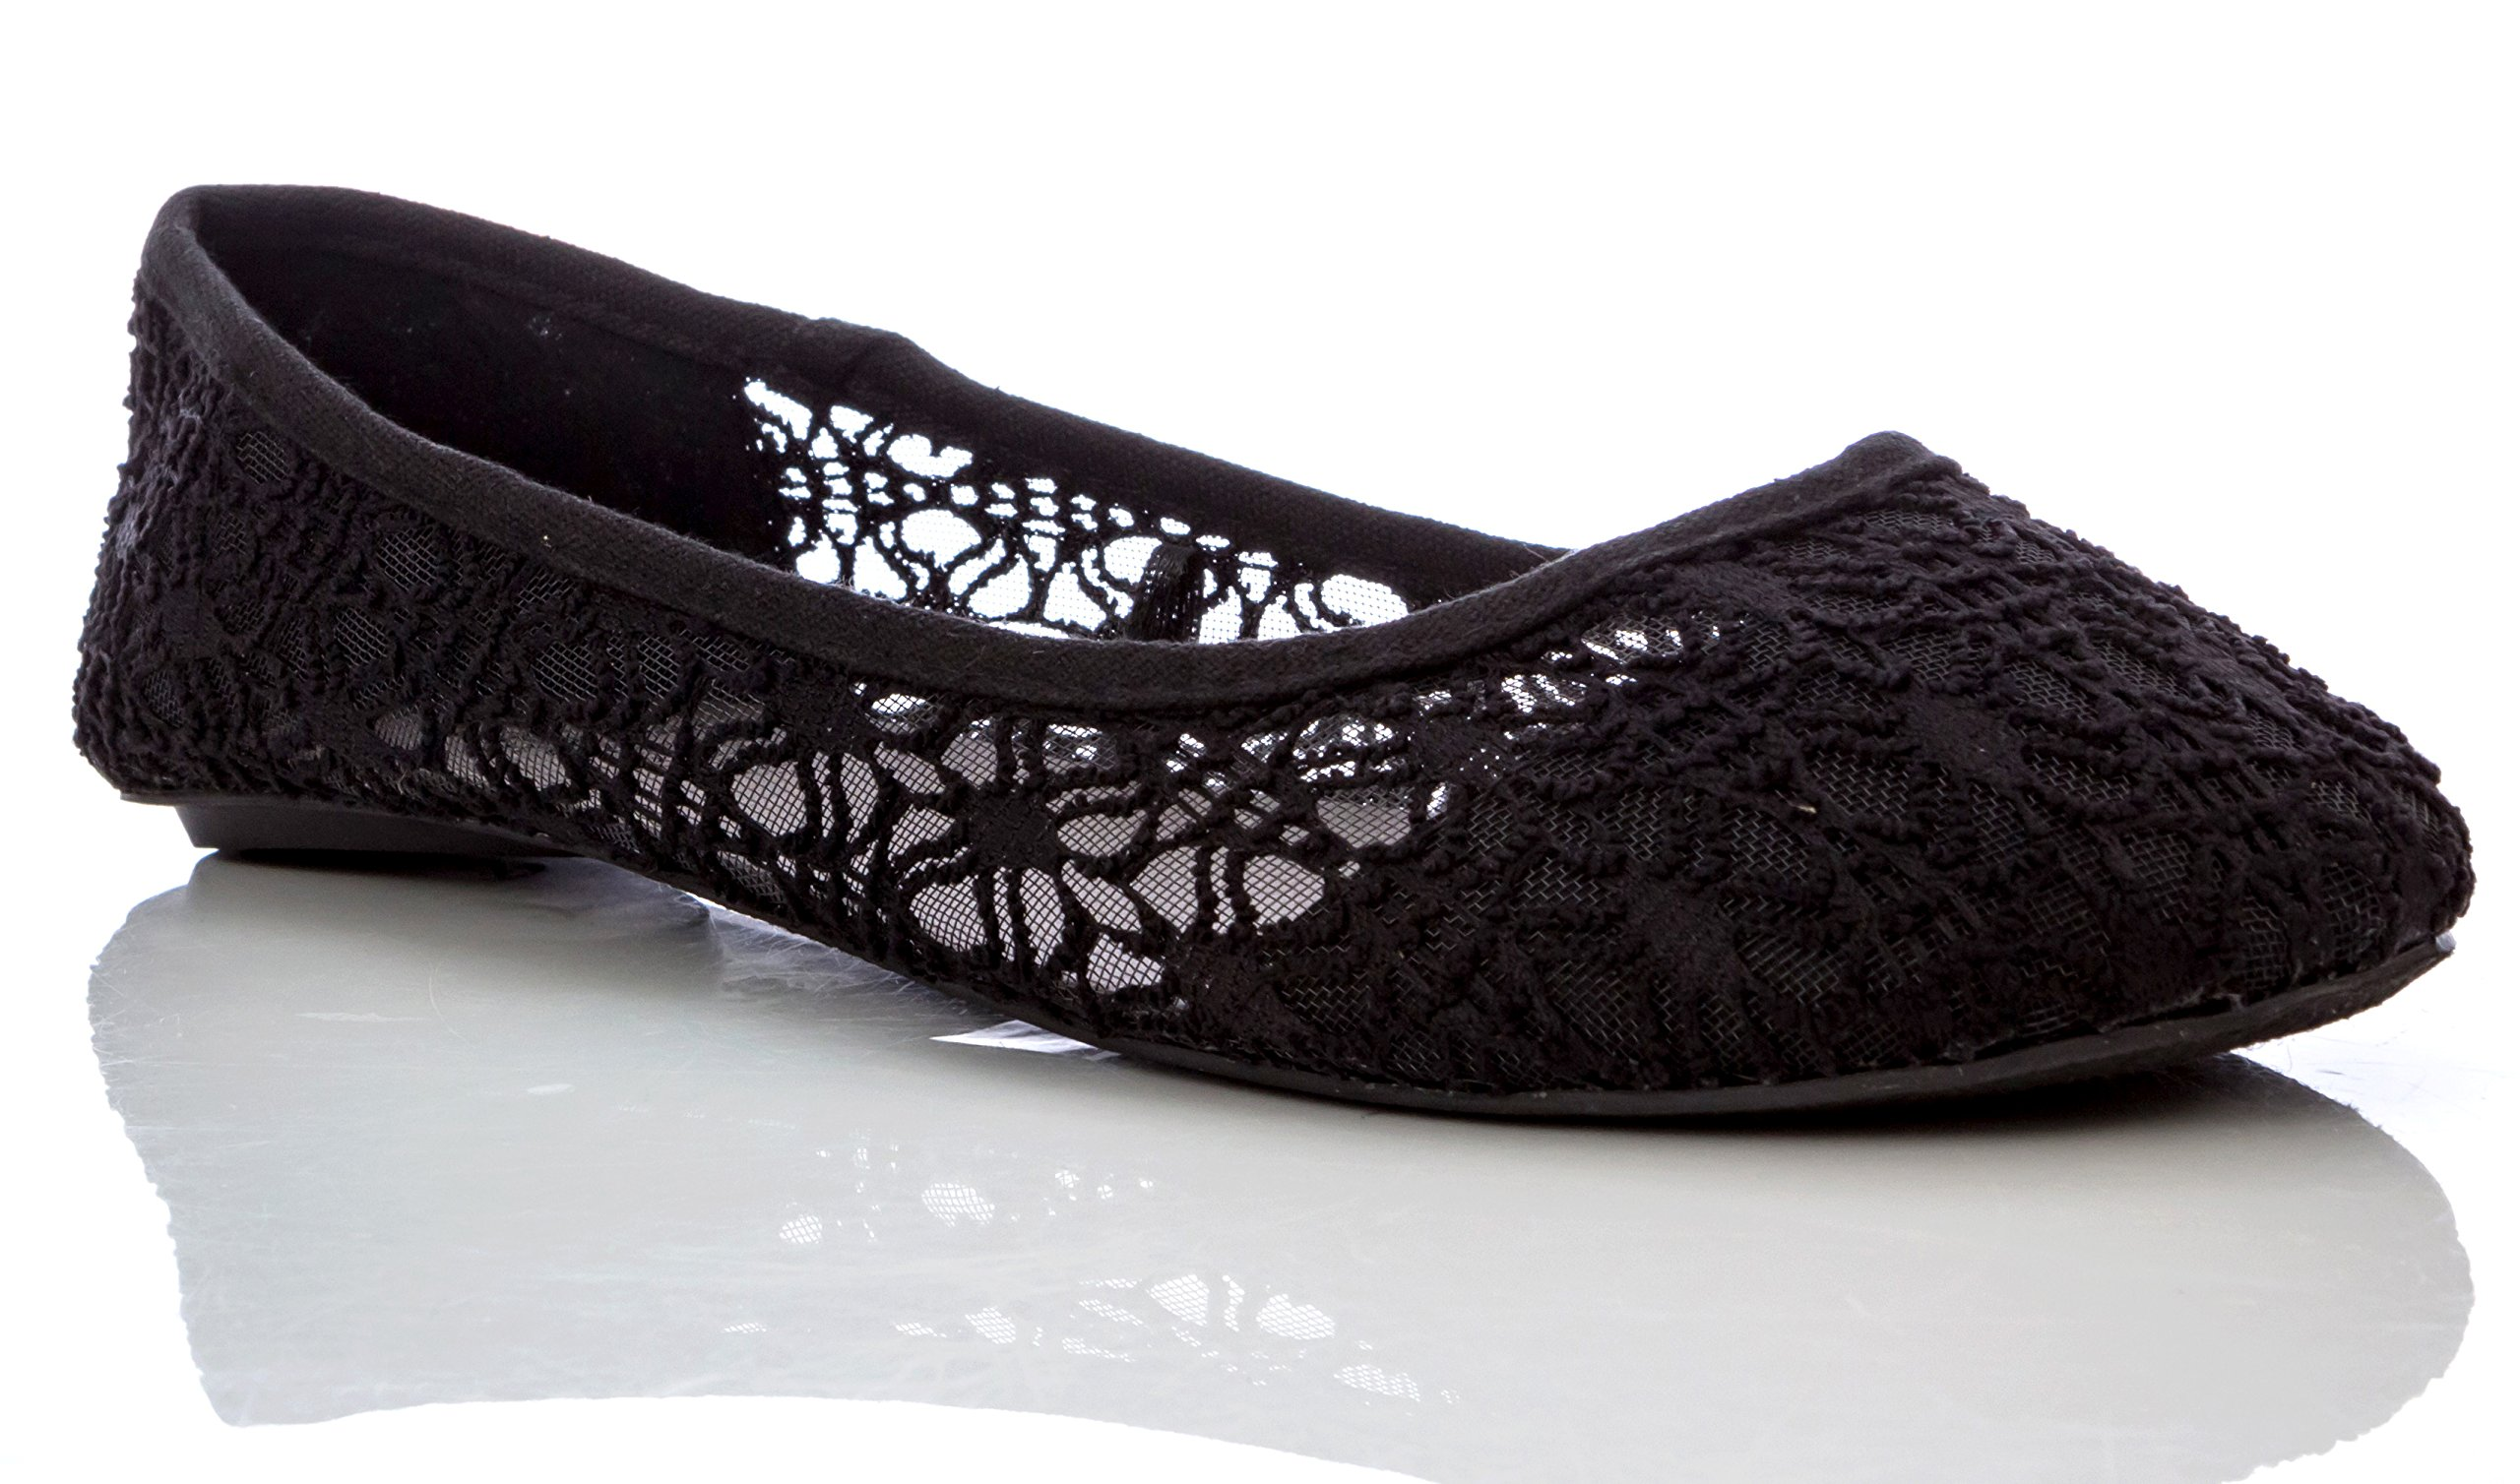 Charles Albert Women's Breathable Crochet Lace Ballet Flat in Black Size: 8